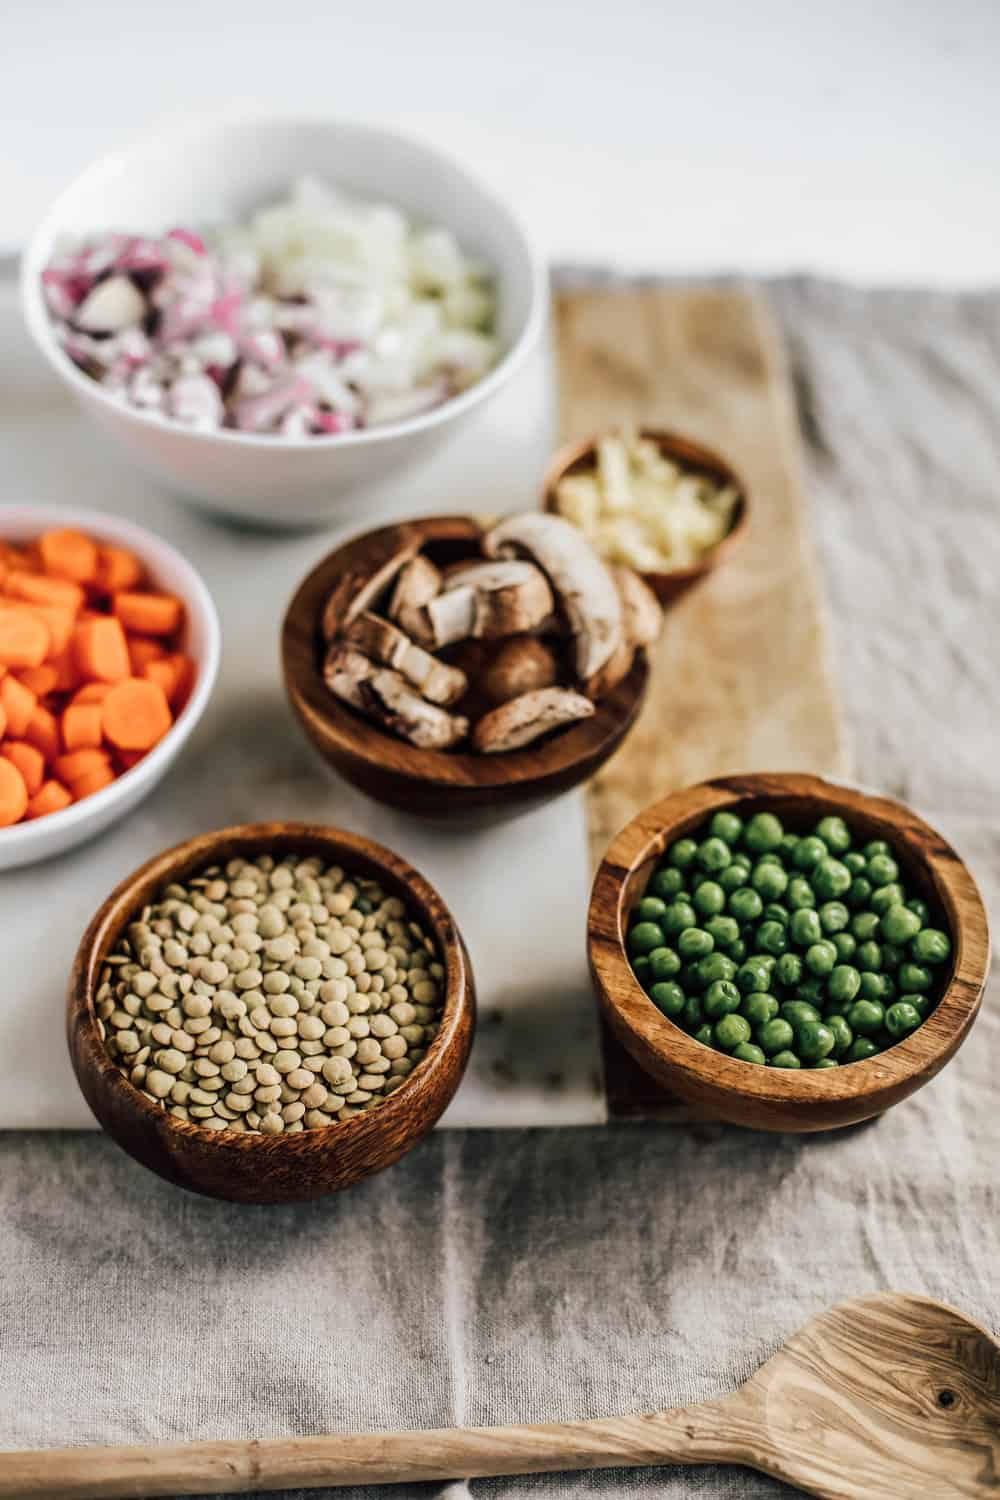 Small wooden bowls of peas, lentils, carrots, mushrooms, and diced onion.